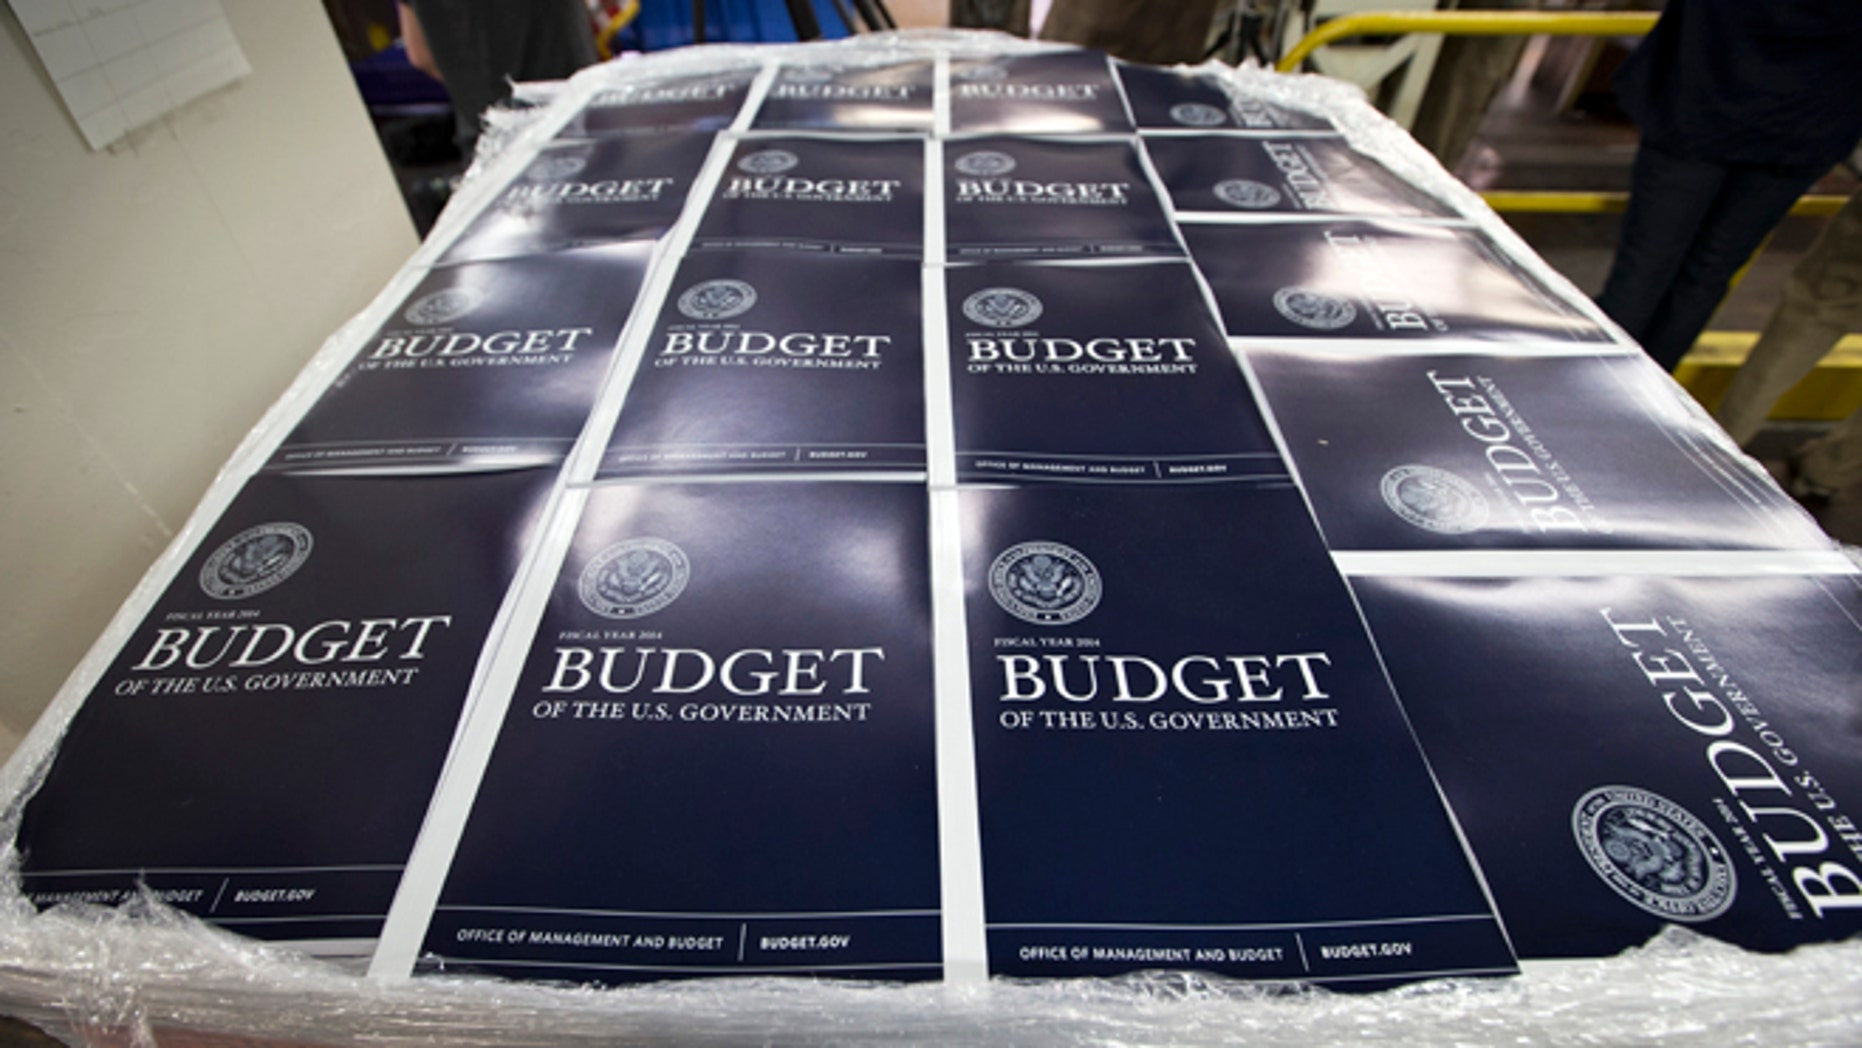 Copies of President Obama's proposed federal budget plan for fiscal year 2014 are prepared for delivery at the U.S. Government Printing Office.